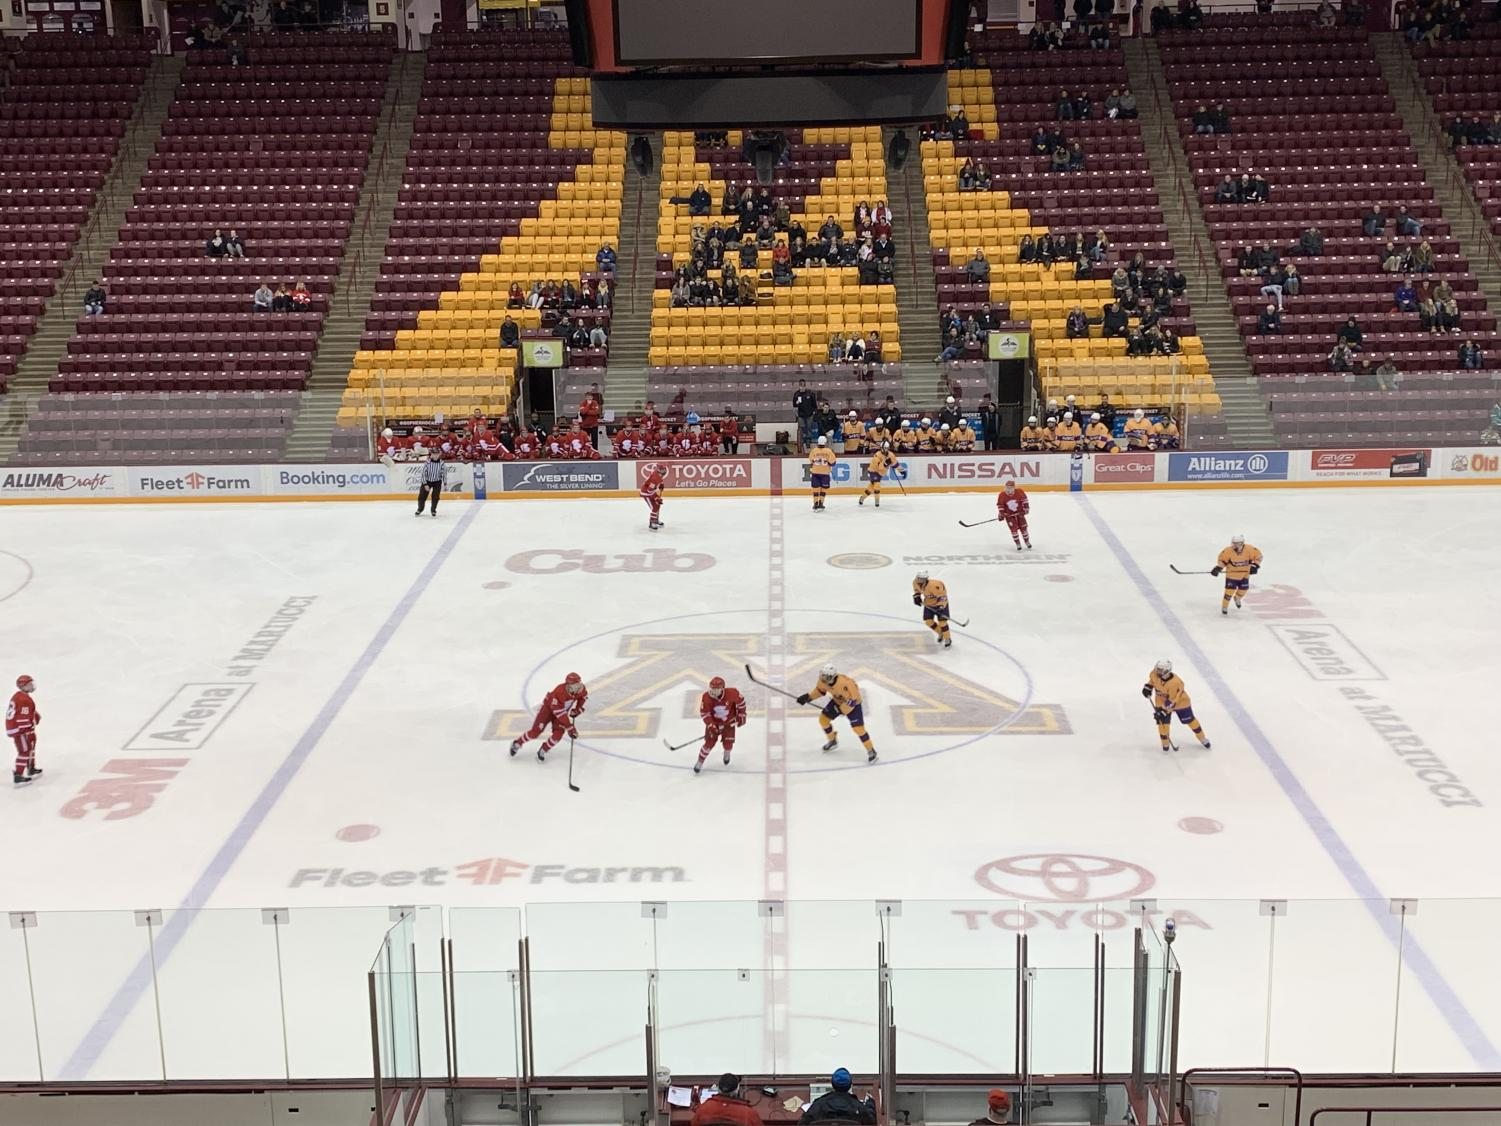 The big conference game between the #8 BSM Red Knights and #15 Chaska Hawks was played February 11 at 3M Arena at Mariucci, the home of the Gophers.